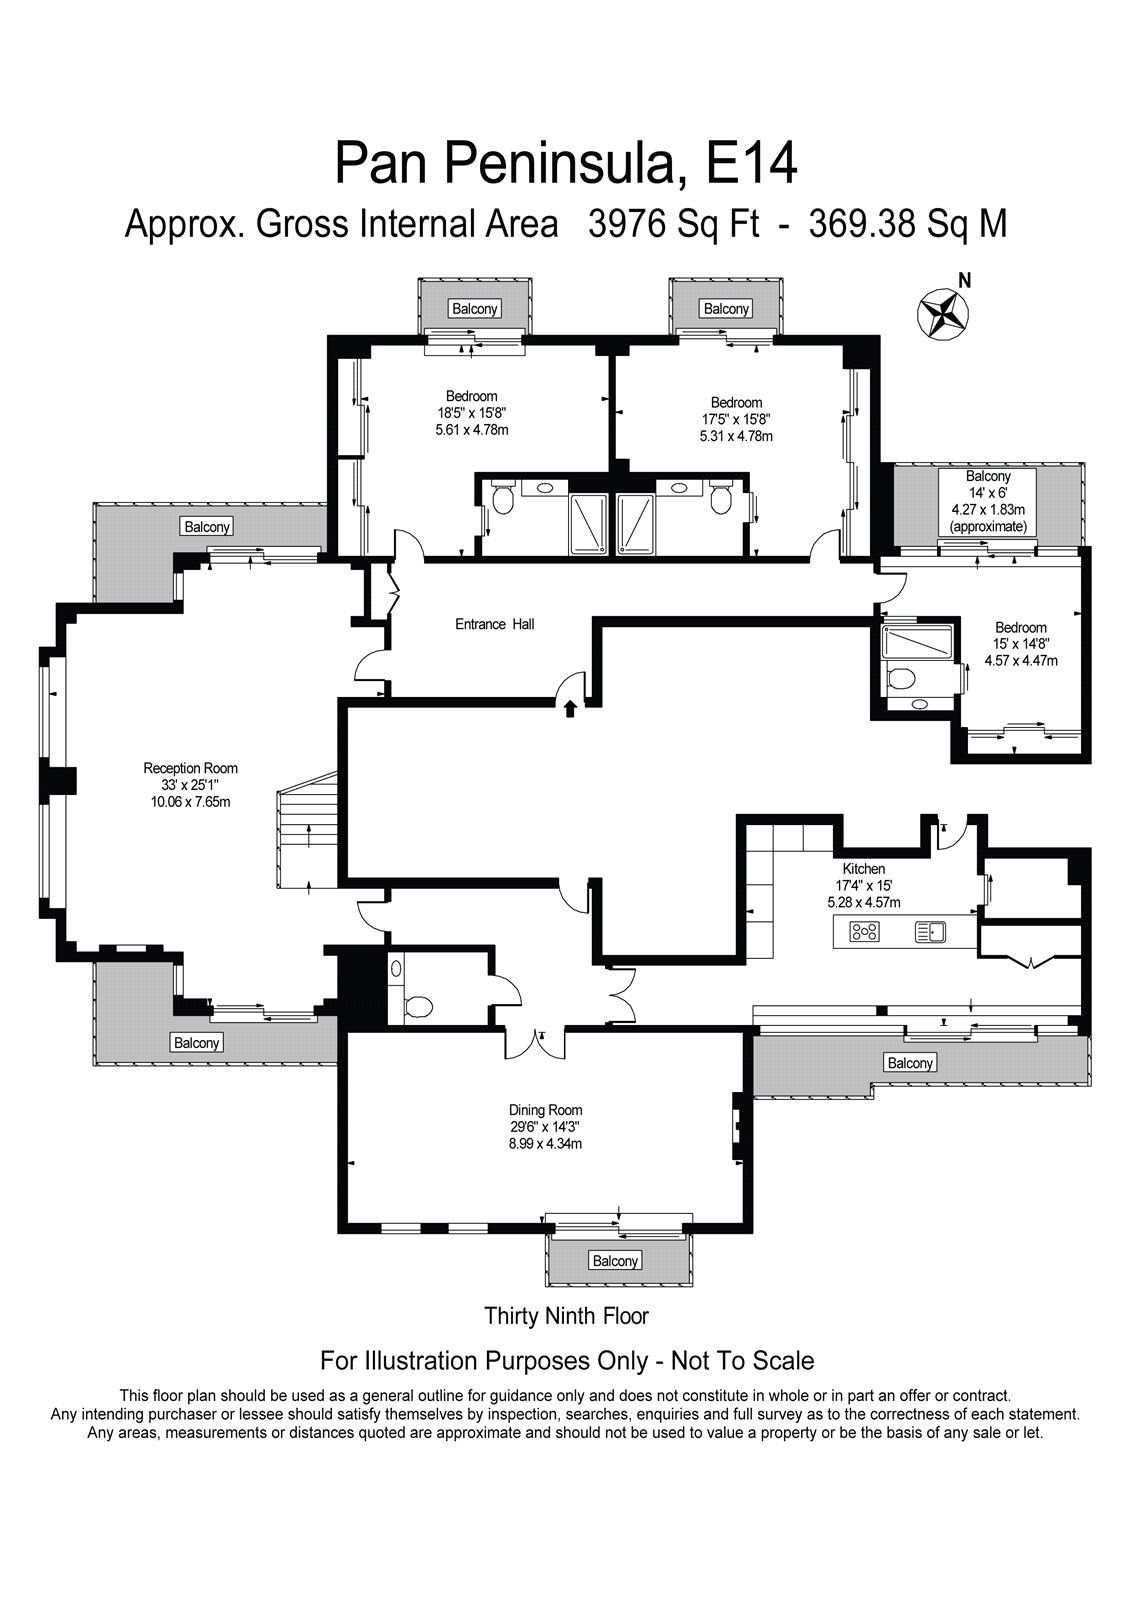 Floorplan 2 of 2: Floor Plan 39th Flr